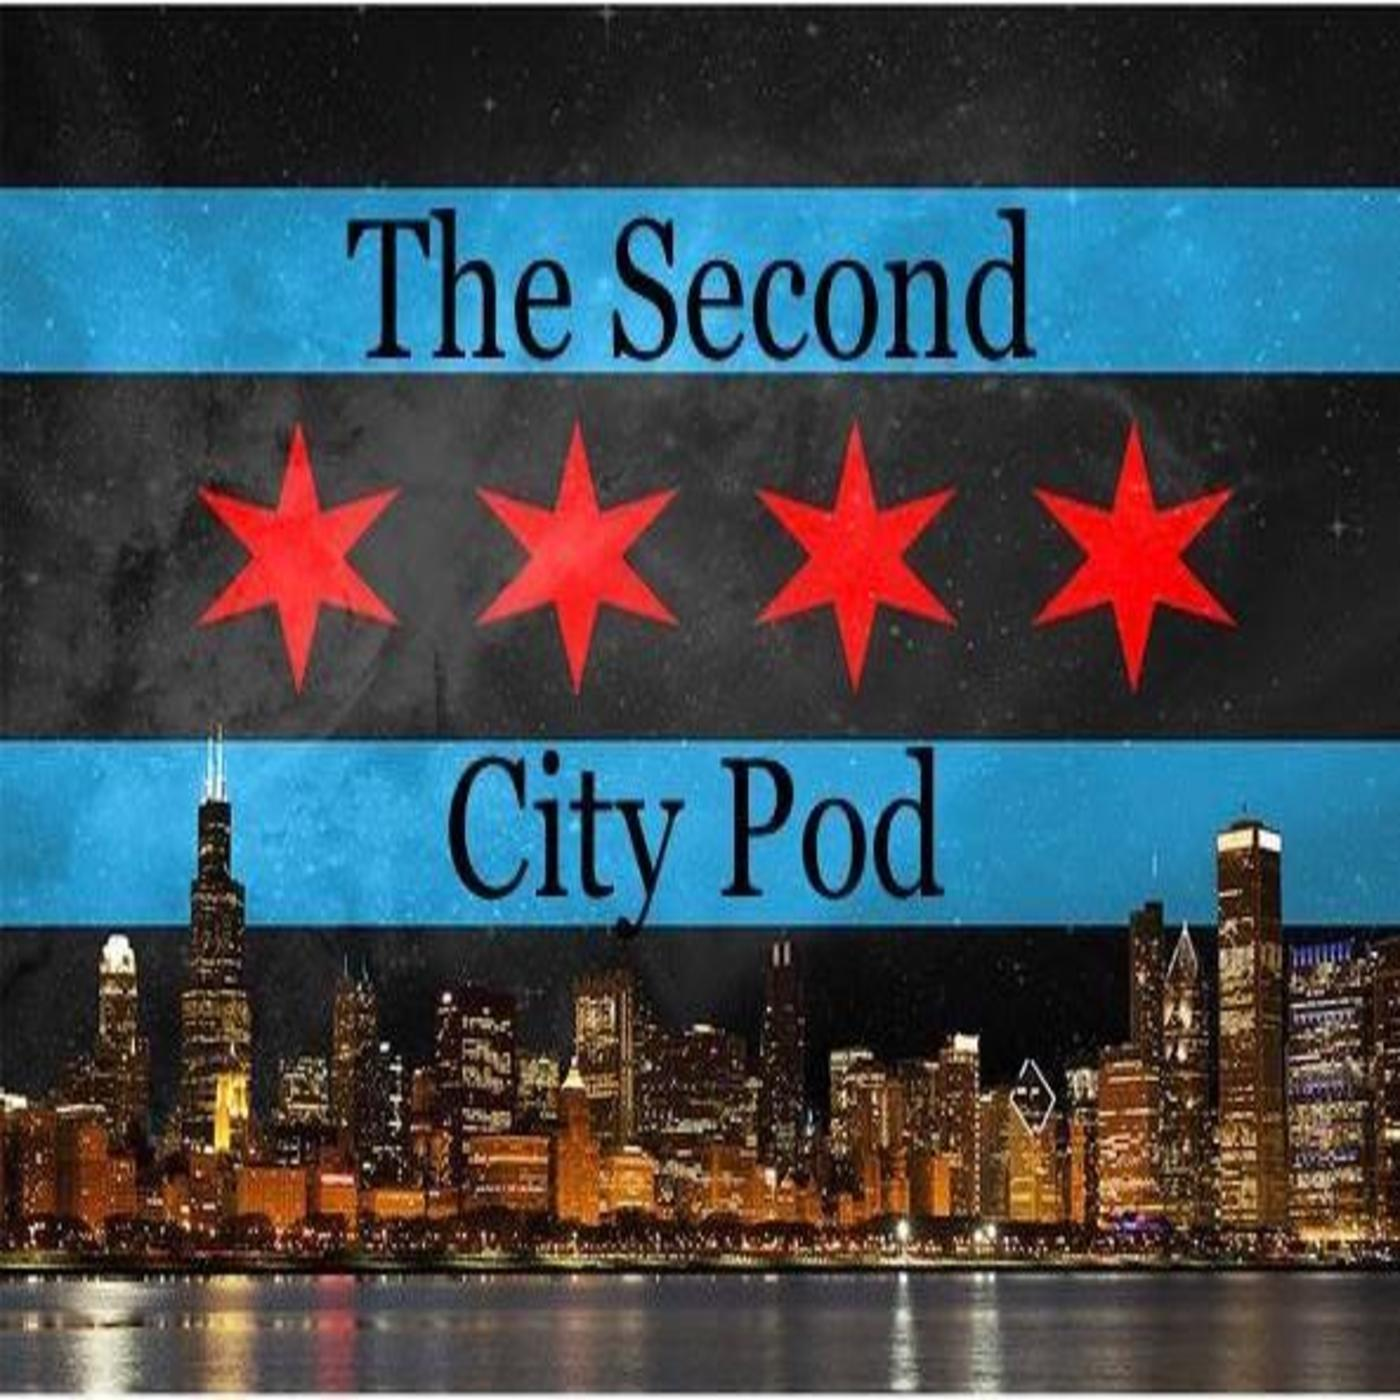 The Second City Pod